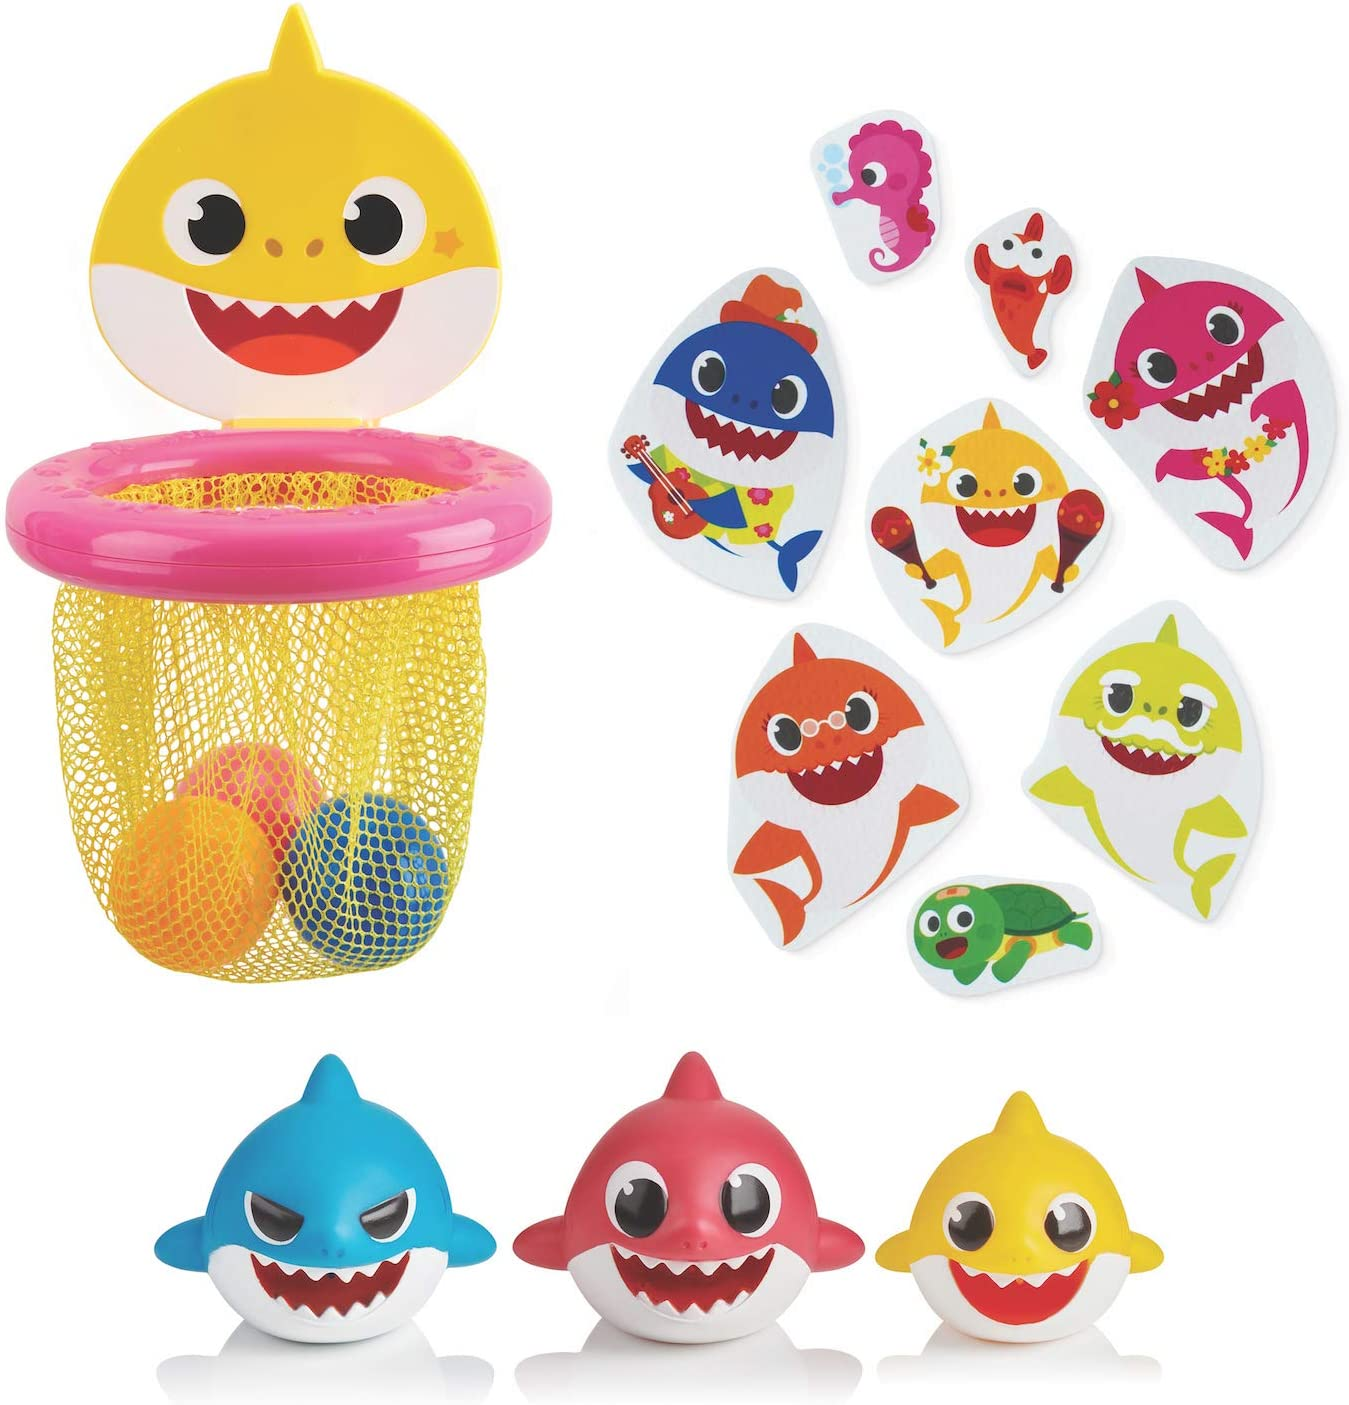 WowWee Pinkfong Outlet sale feature Baby Shark Official - Toy Bath Bundle Amazon Ex excellence